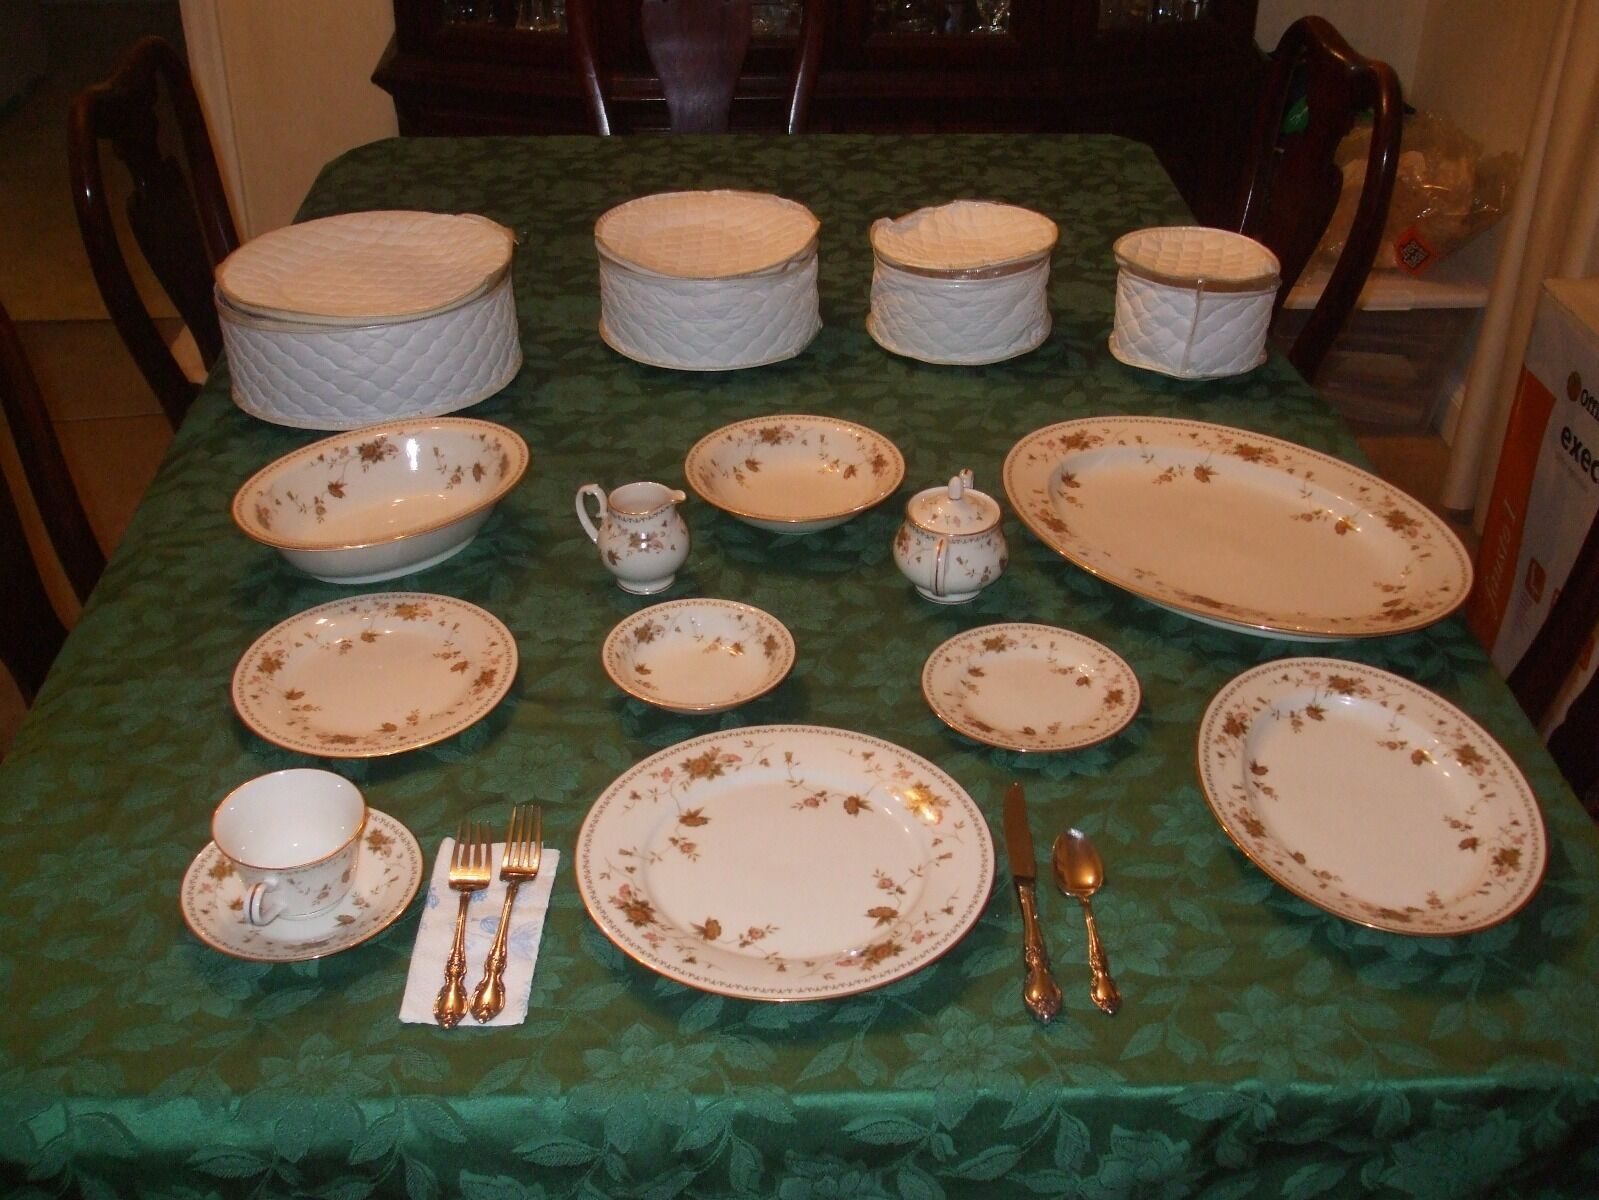 PRICE REDUCED! 88 Piece Noritake Fine China Dining Set For 12 With Gold Rim  1 Of 5 PRICE REDUCED! 88 Piece Noritake Fine China Dining Set ...